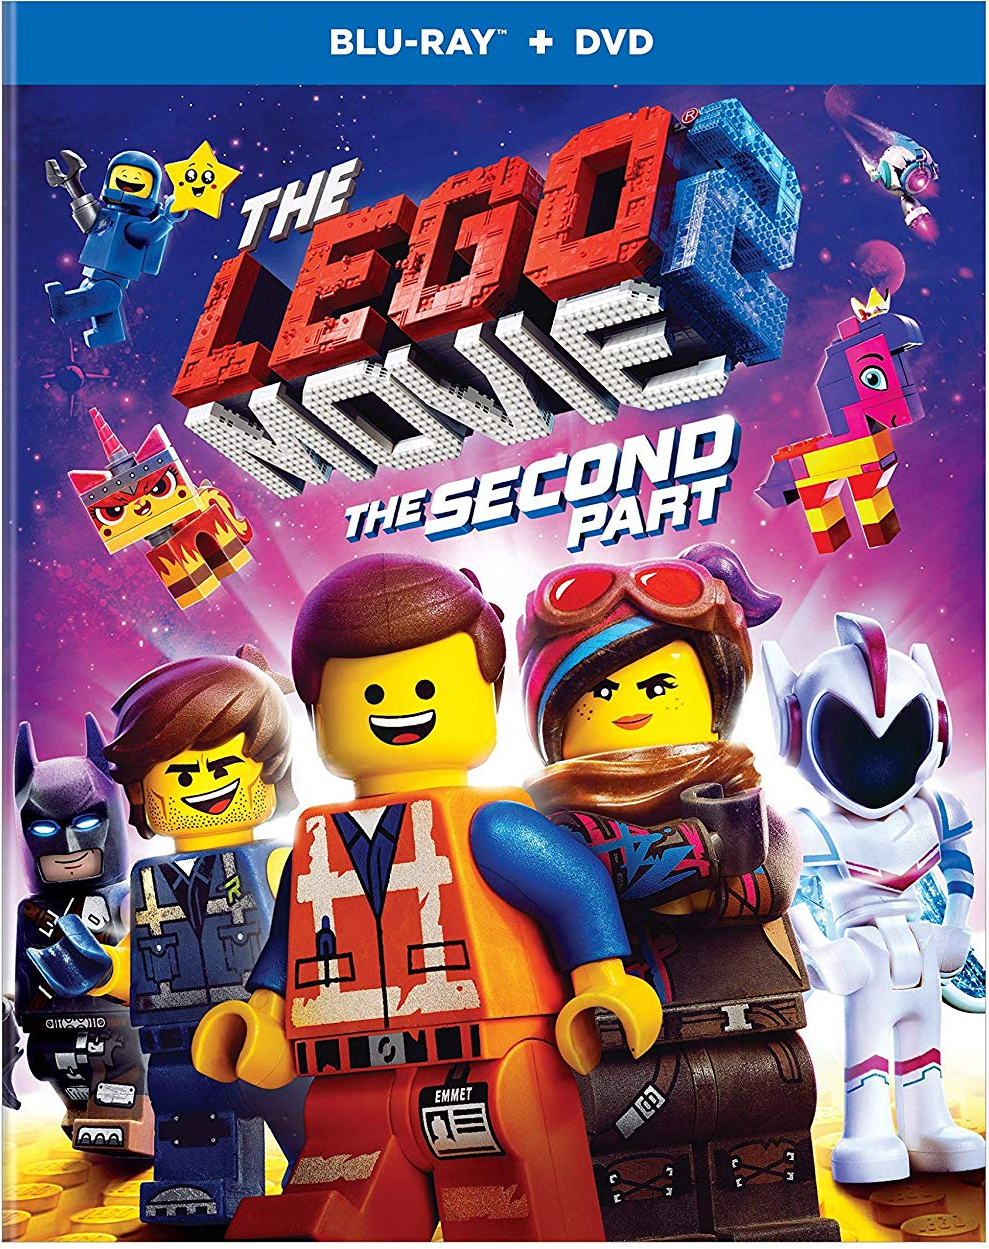 LEGO Movie 2: The Second Part [Blu-ray + DVD]